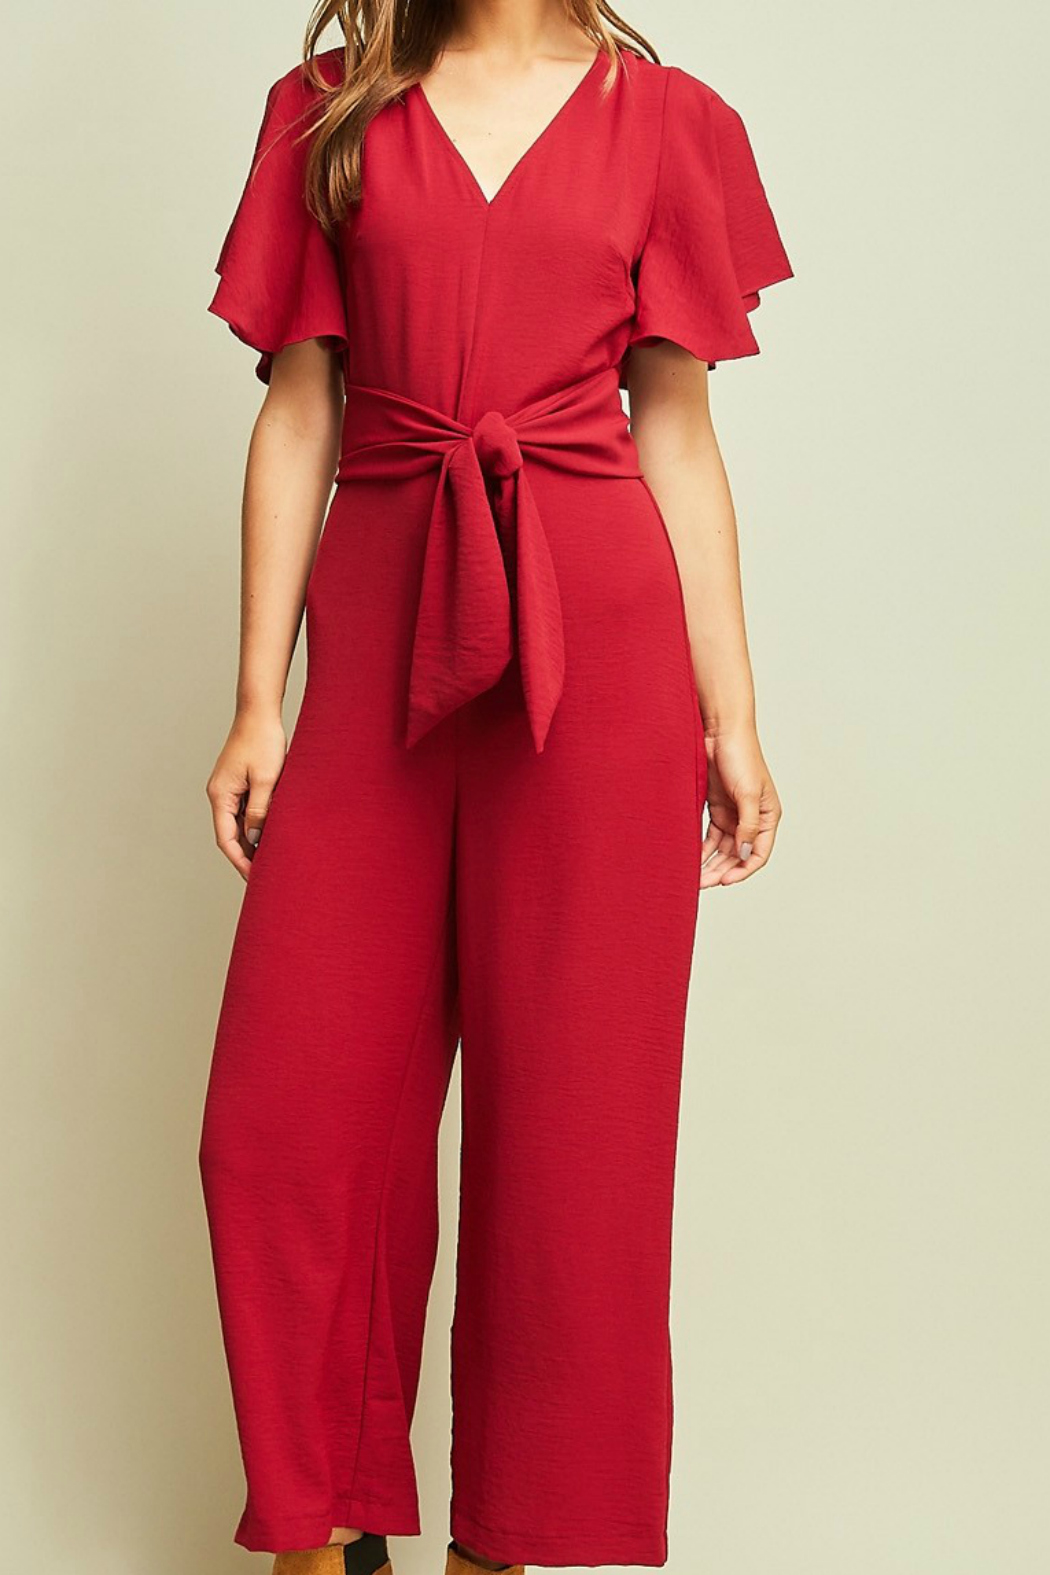 7908d88b29bfb Entro Jumpsuit with Tie from New York by Gado-Gado — Shoptiques